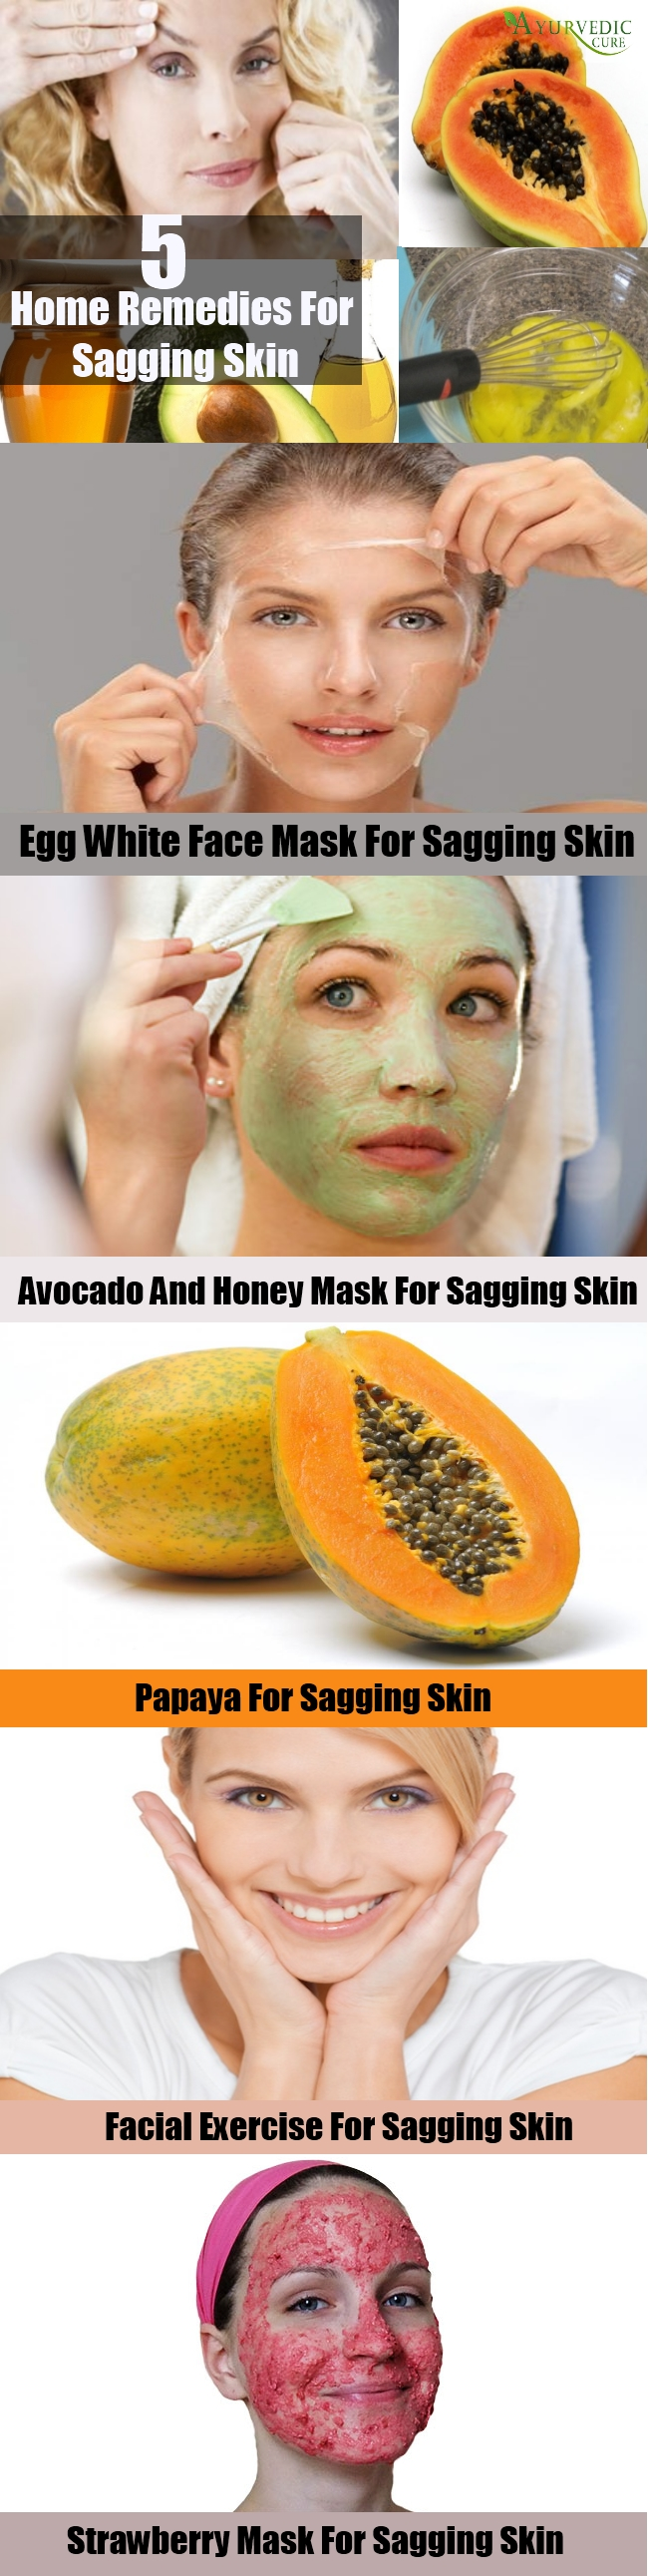 5 Home Remedies For Sagging Skin